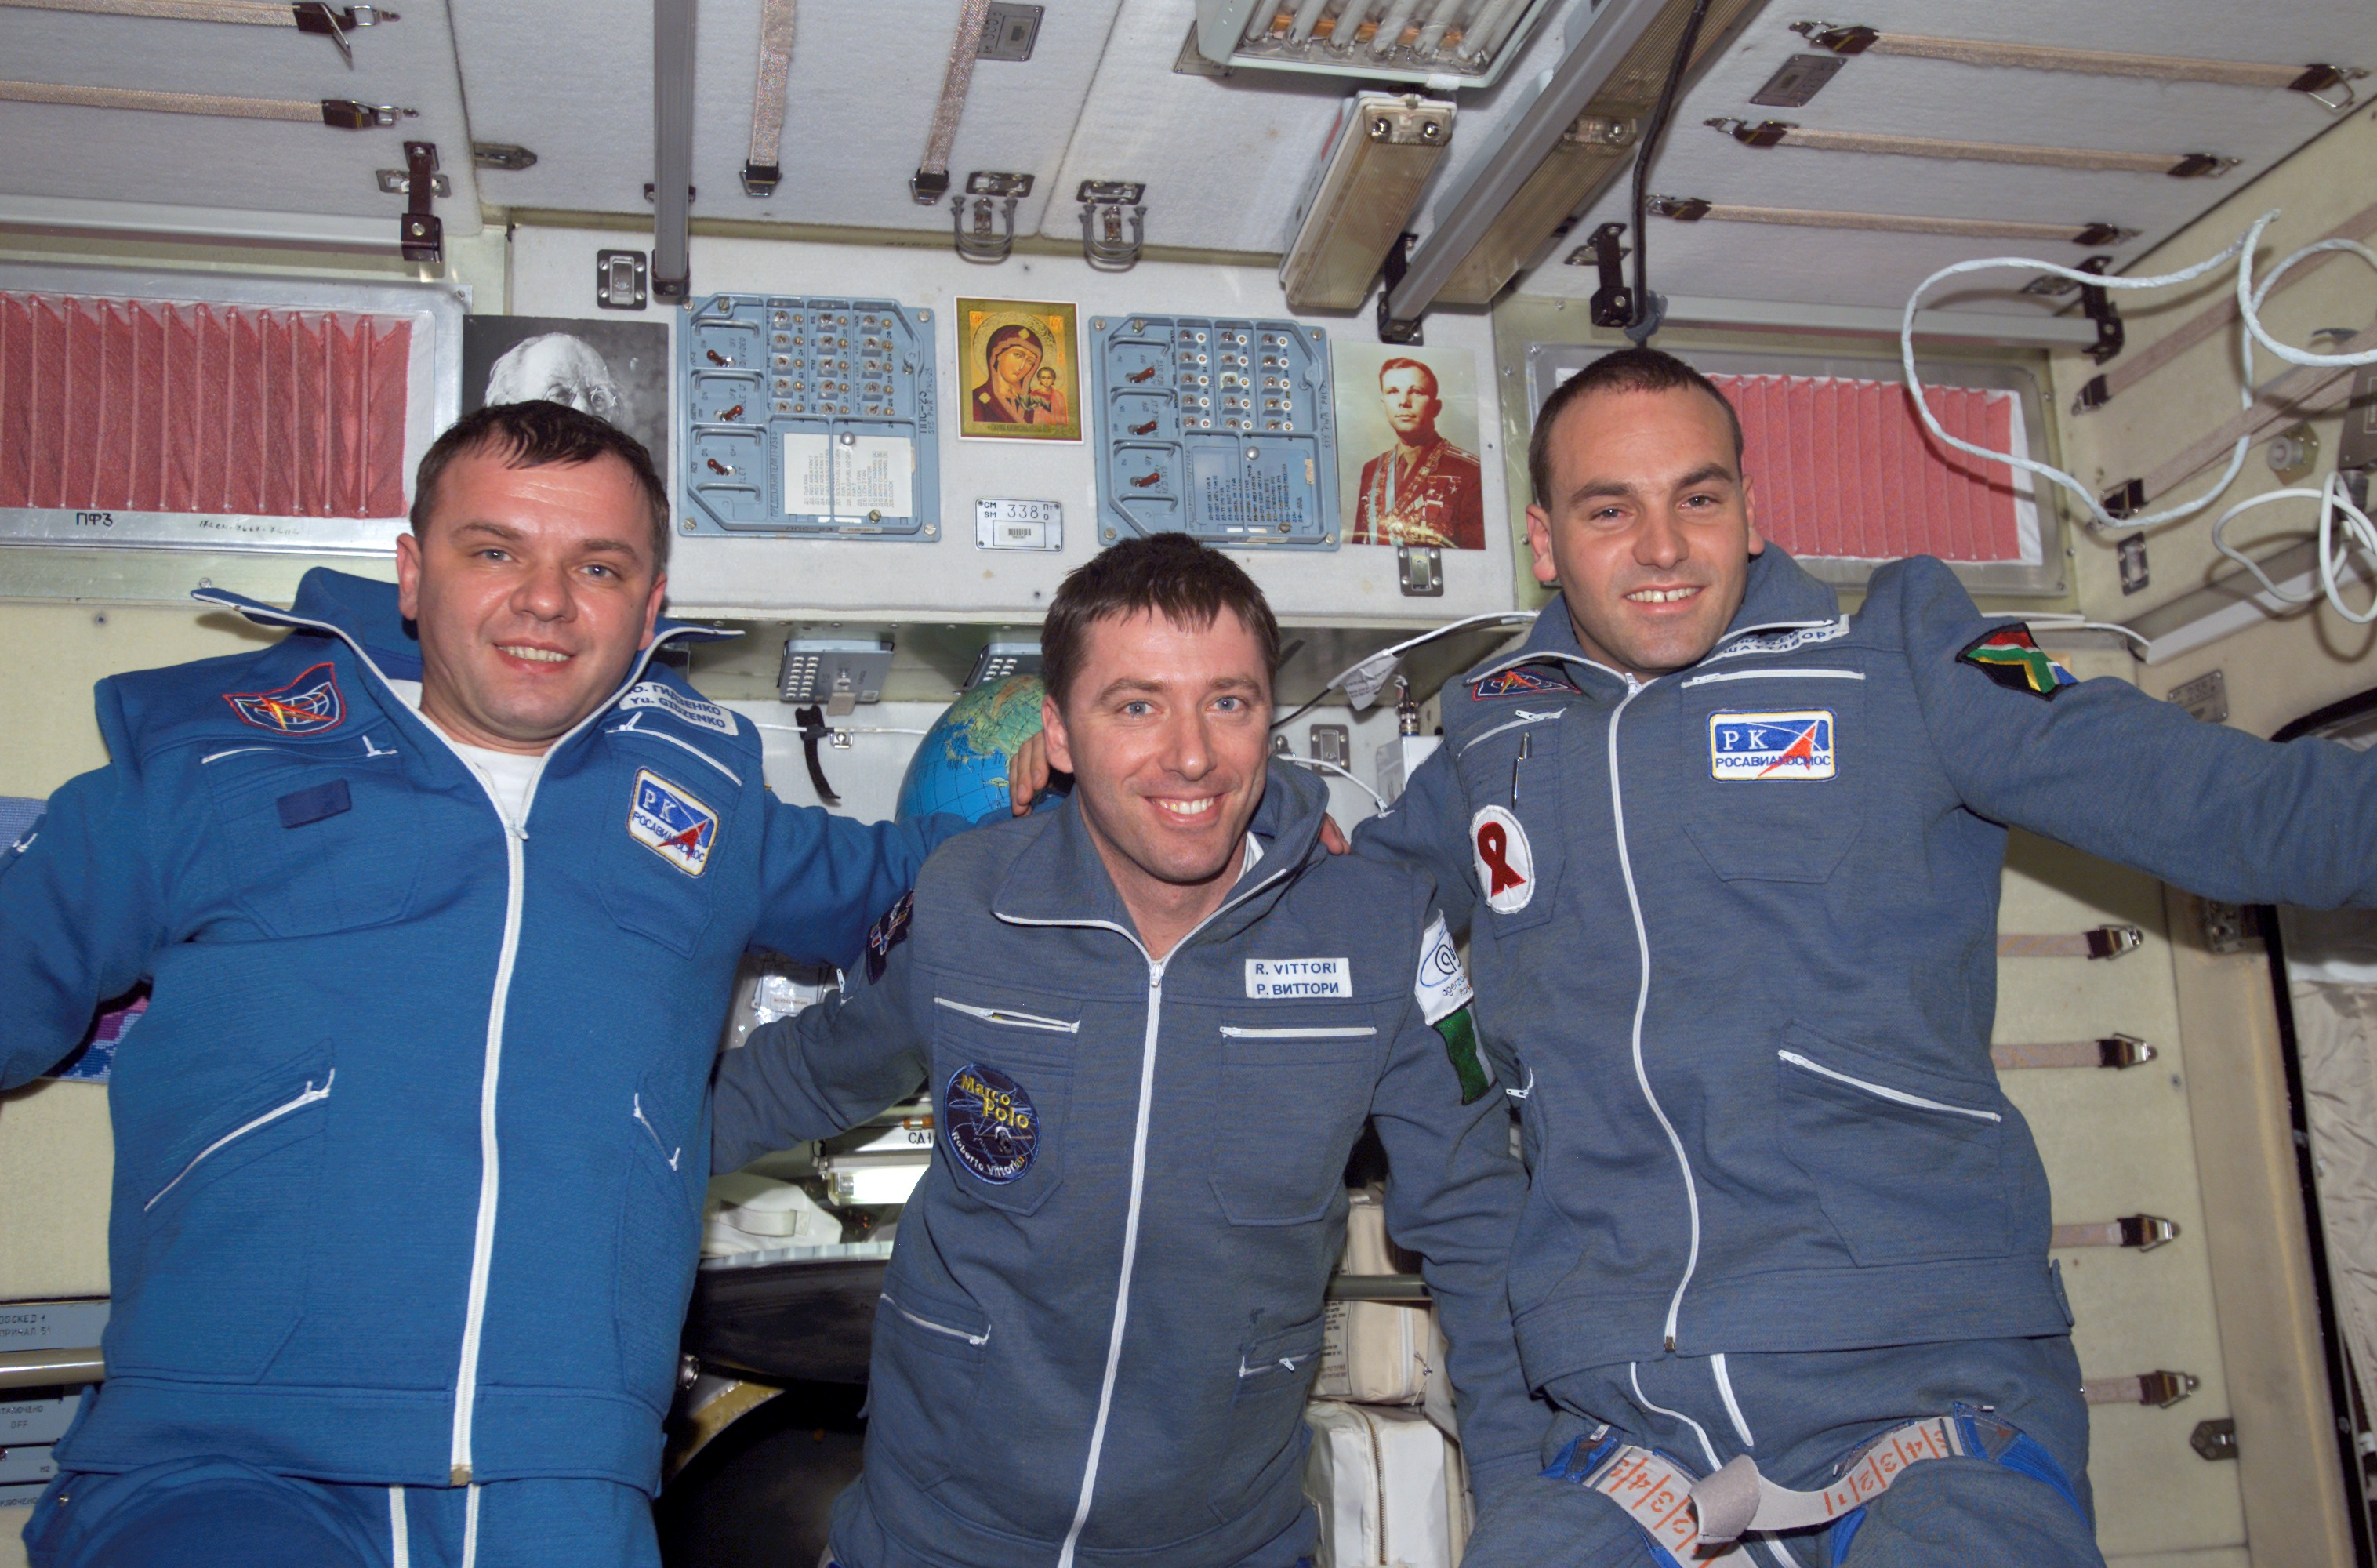 File:Soyuz TM-34 crew 1.jpg - Wikimedia Commons